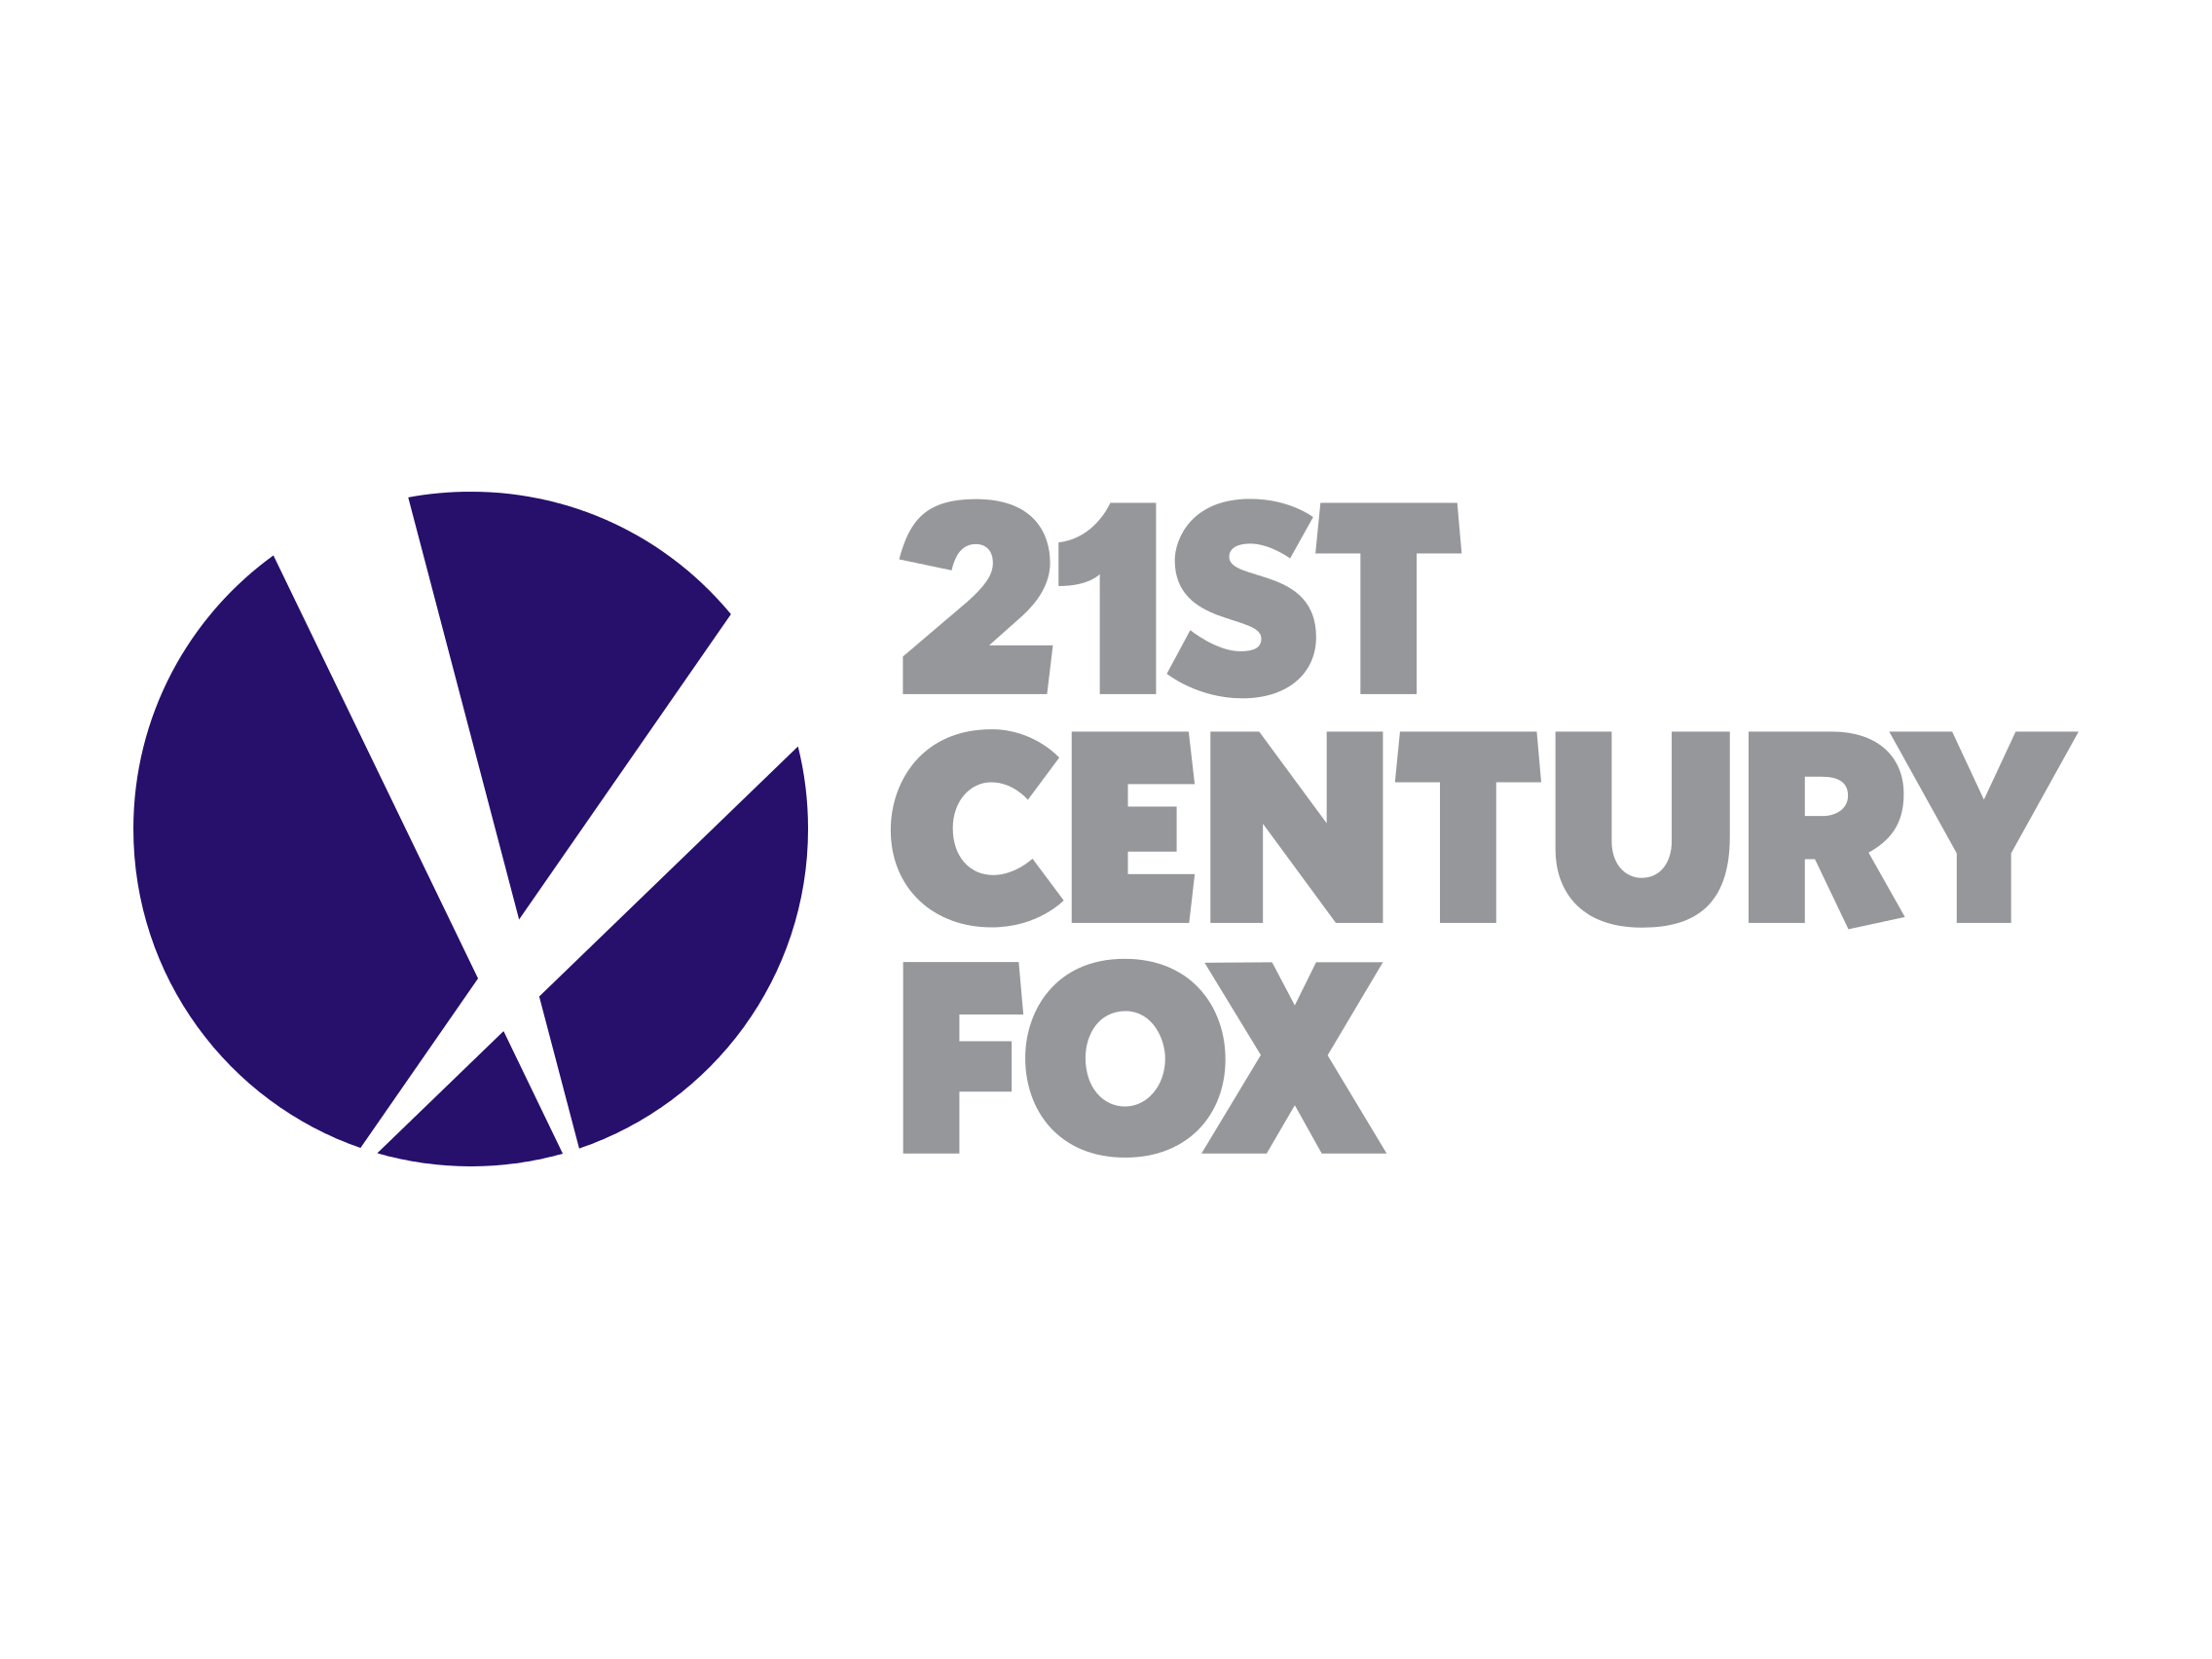 20th Century Fox and Intellective